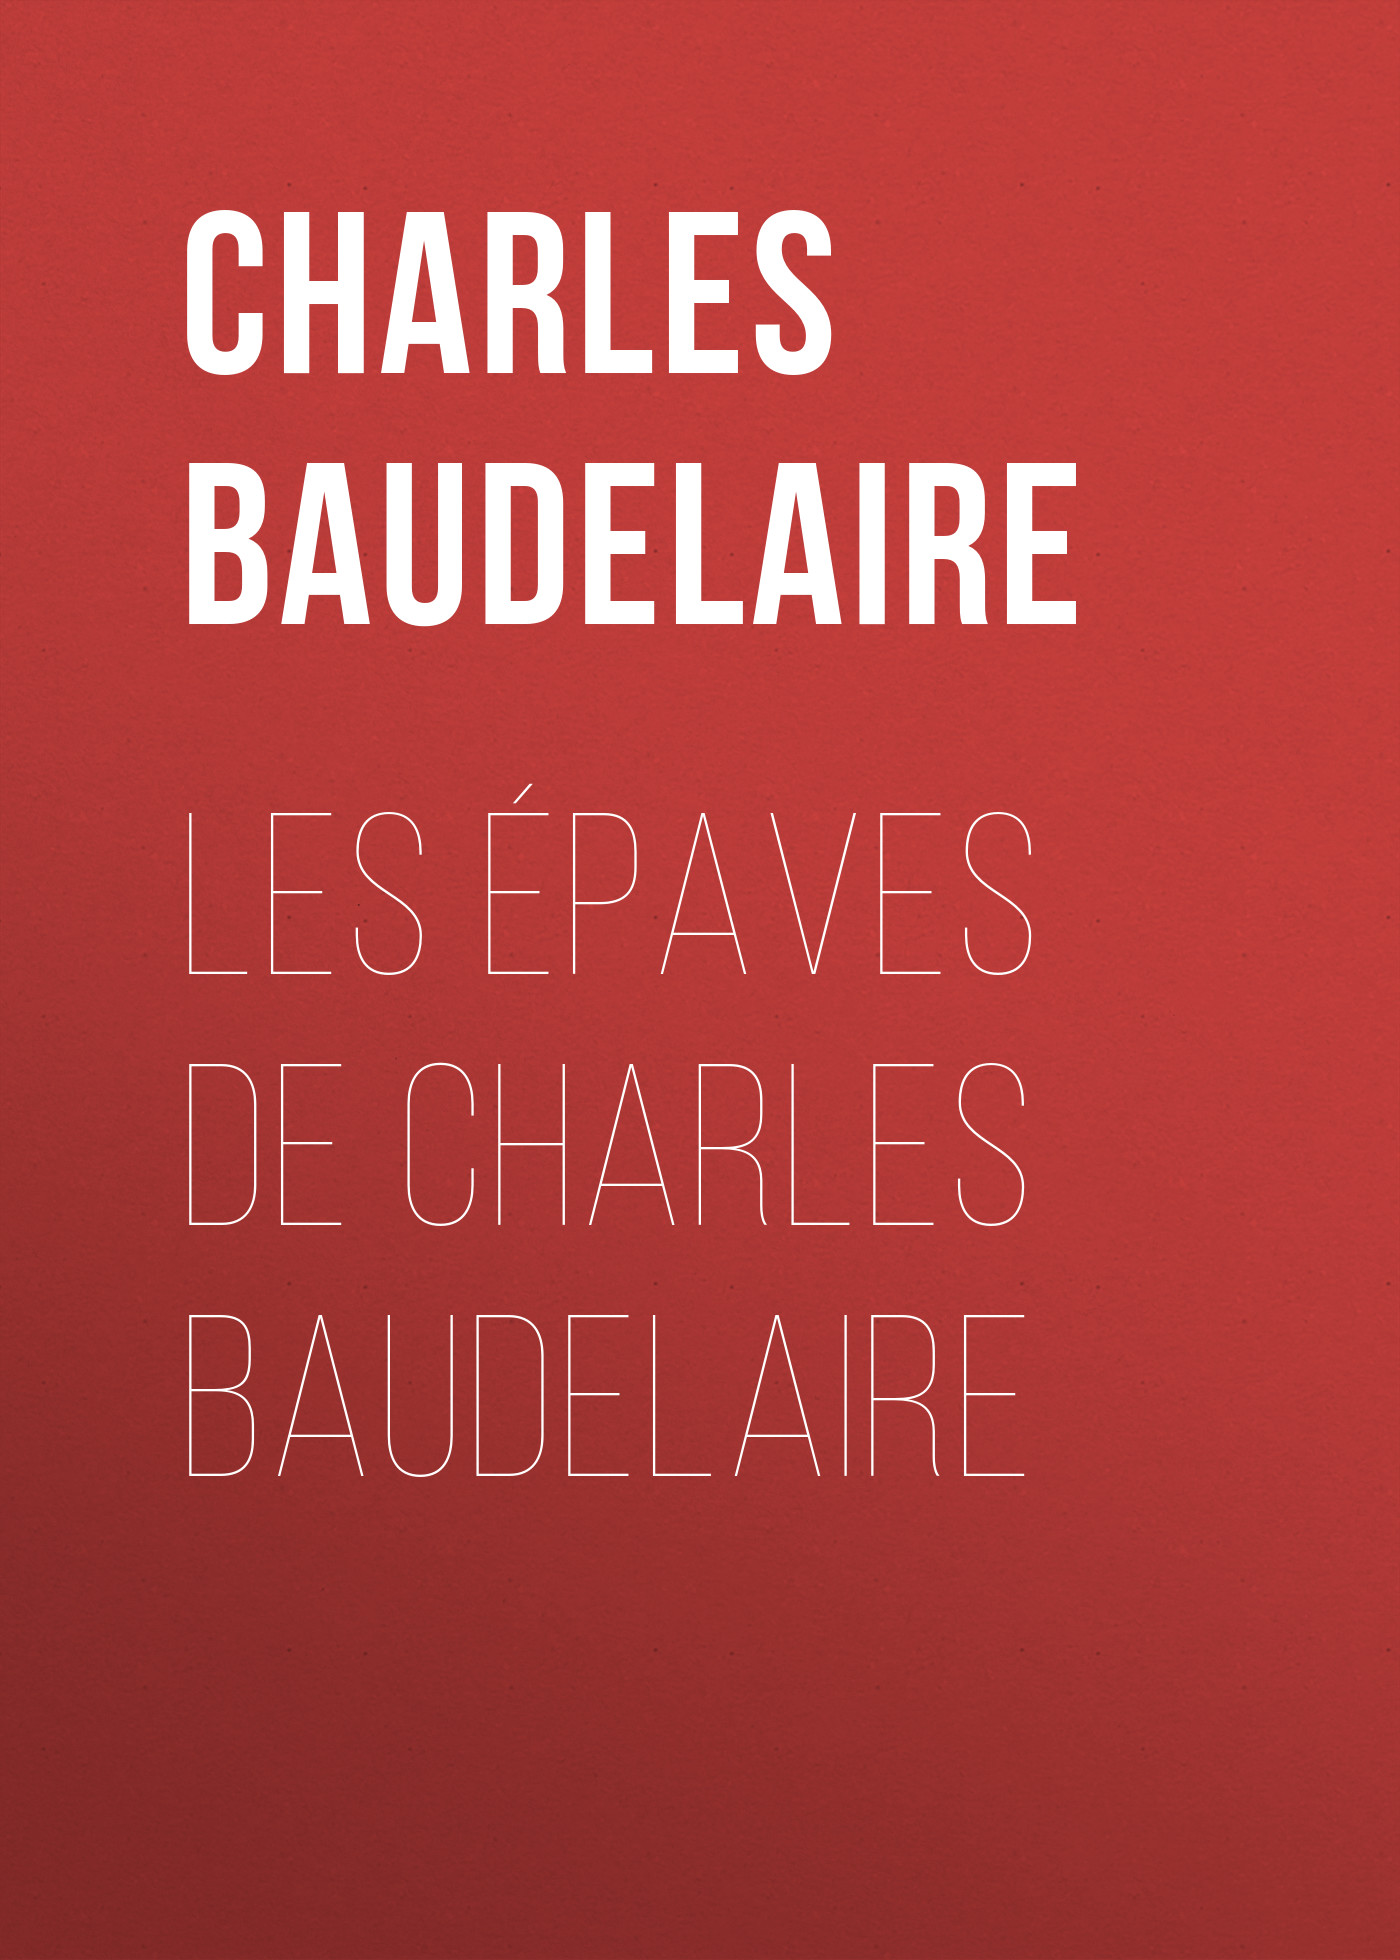 Baudelaire Charles Les épaves de Charles Baudelaire baudelaire charles the poems and prose poems of charles baudelaire